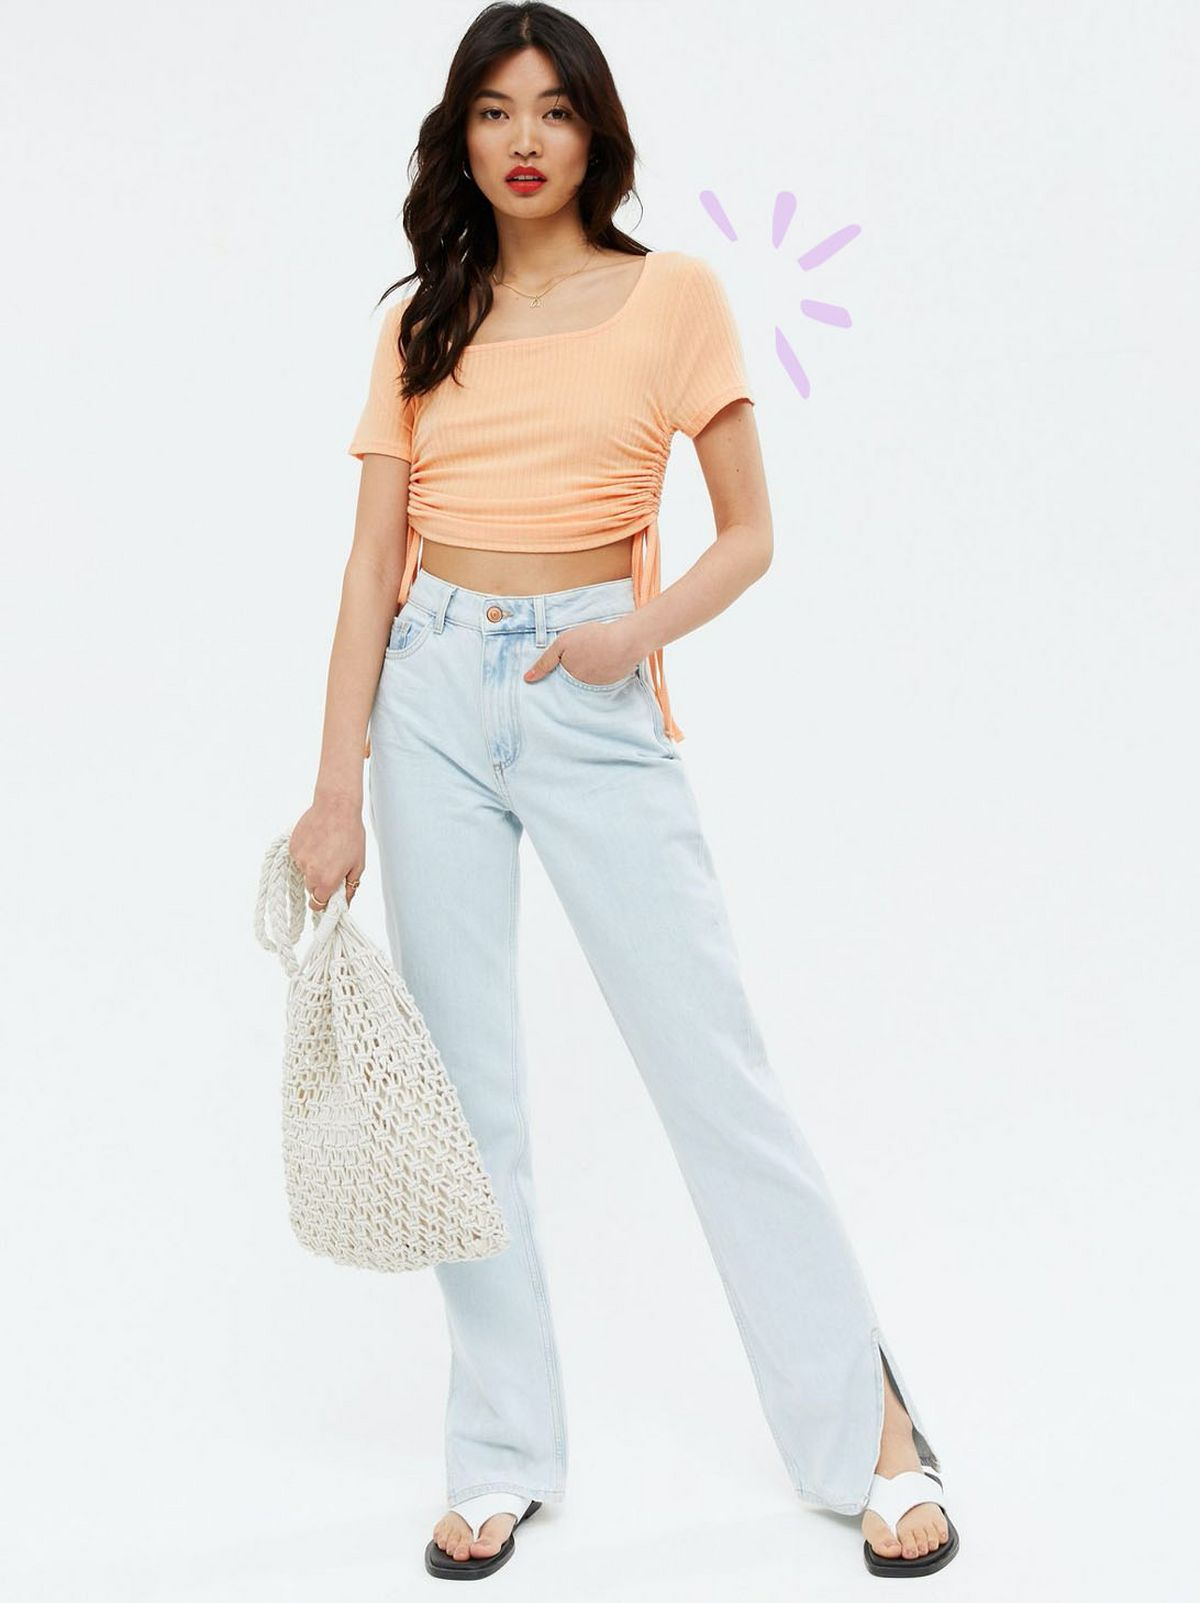 Woman wearing a coral square neck crop t-shirt, blue jeans and flip flops